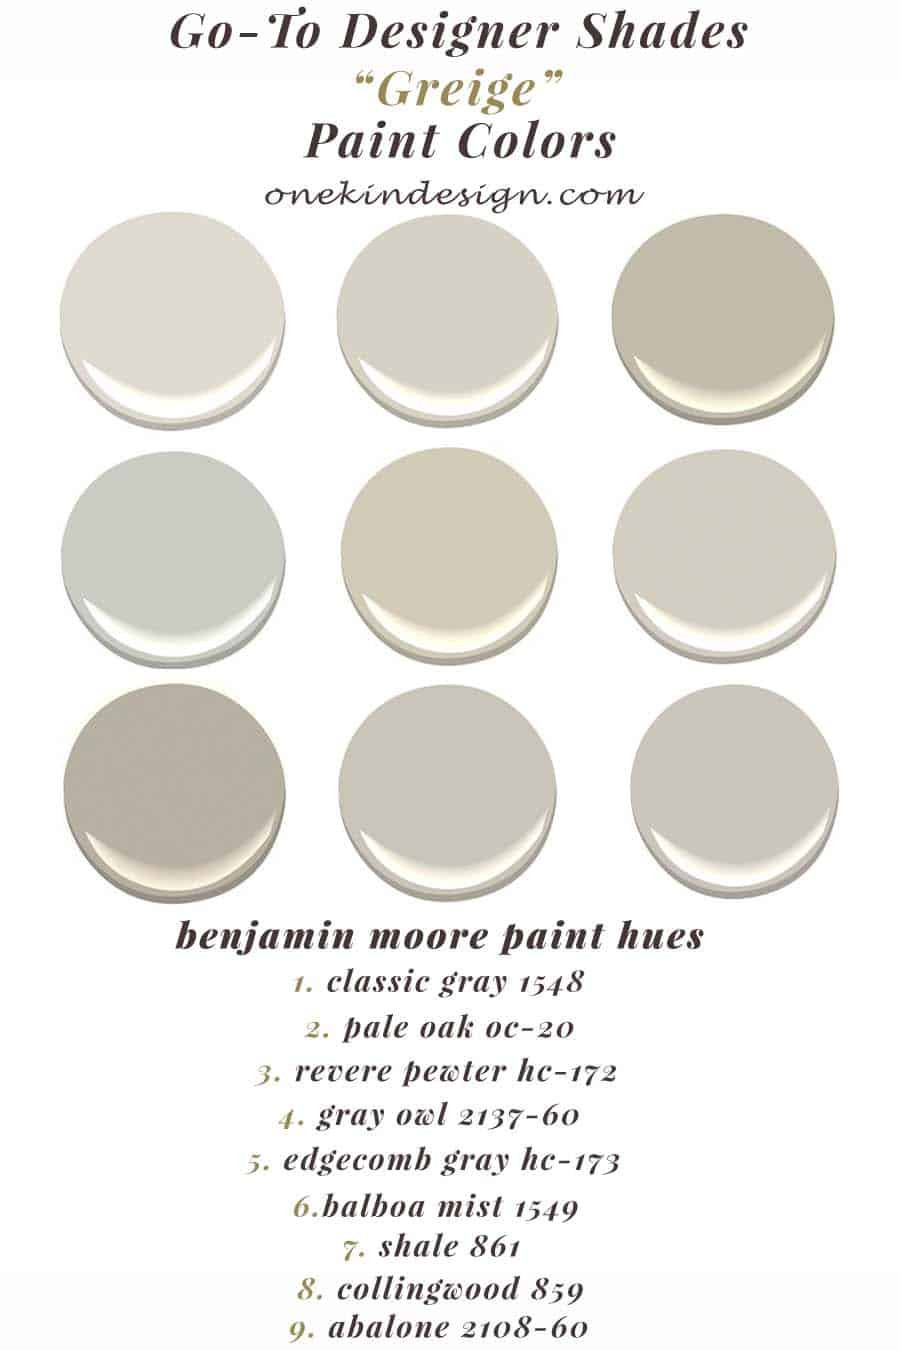 Best ideas about Greige Paint Colors . Save or Pin 30 Exquisite interior spaces showcasing the color greige Now.